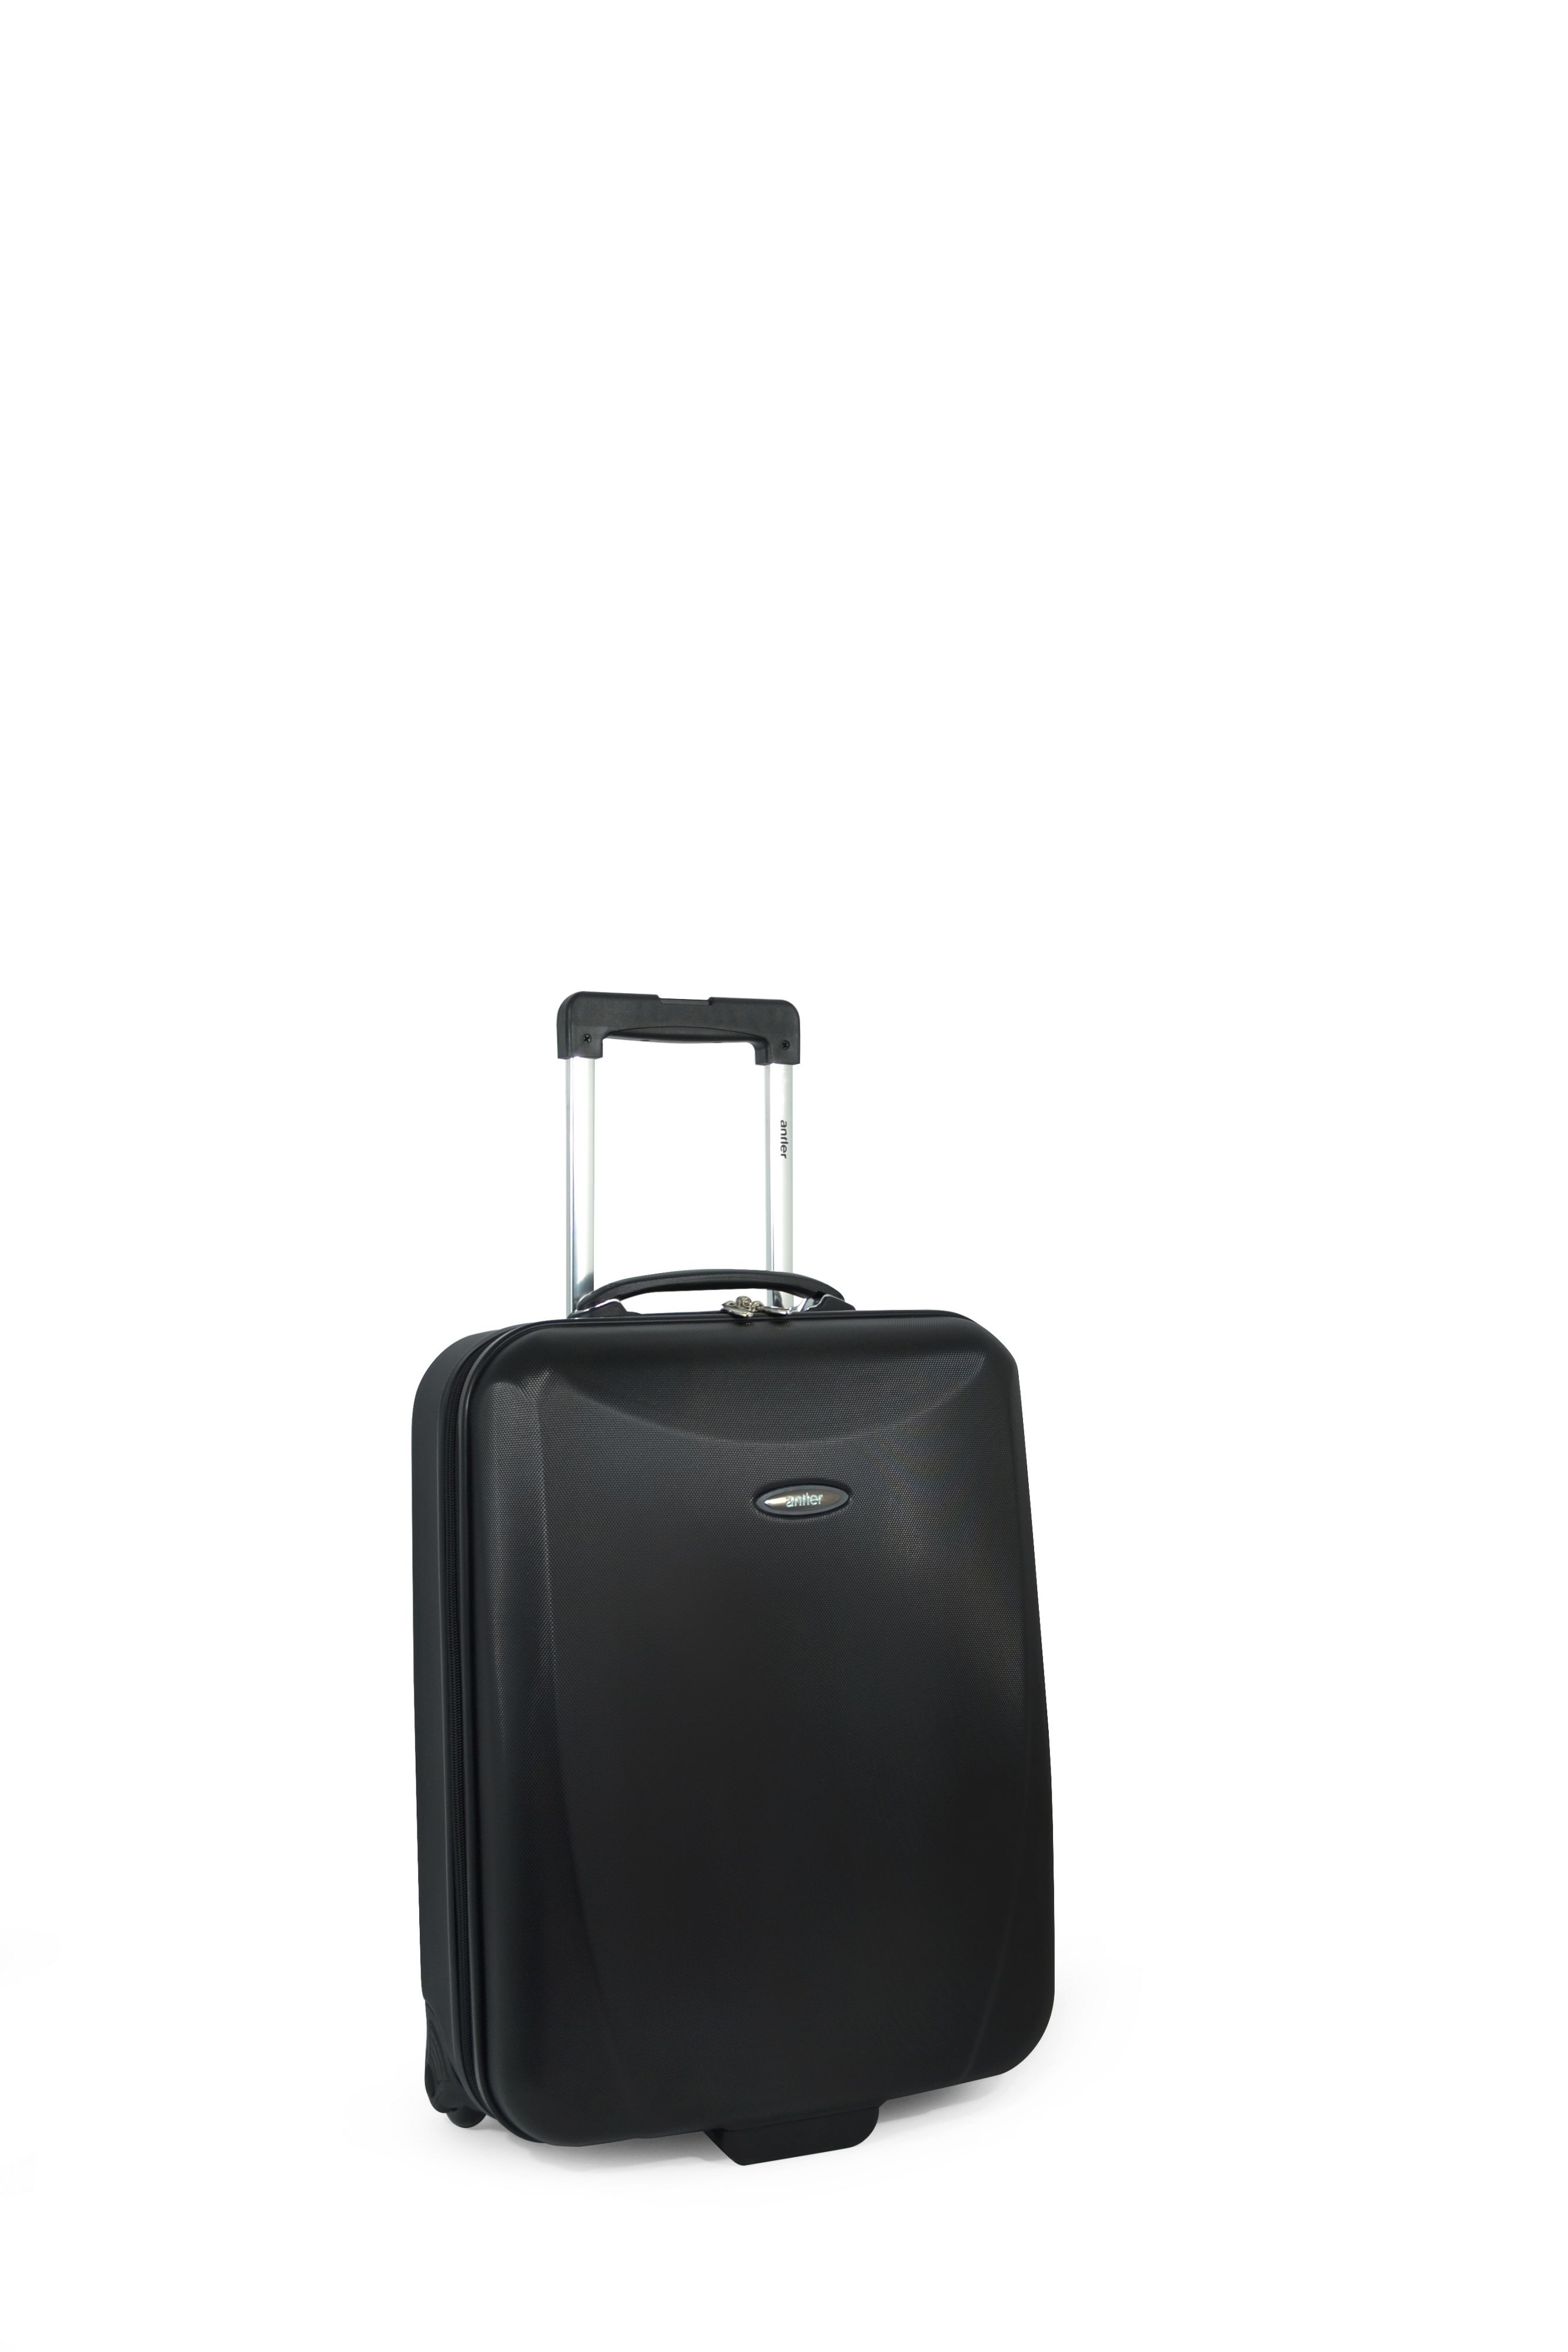 Talara 4 wheel cabin suitcase